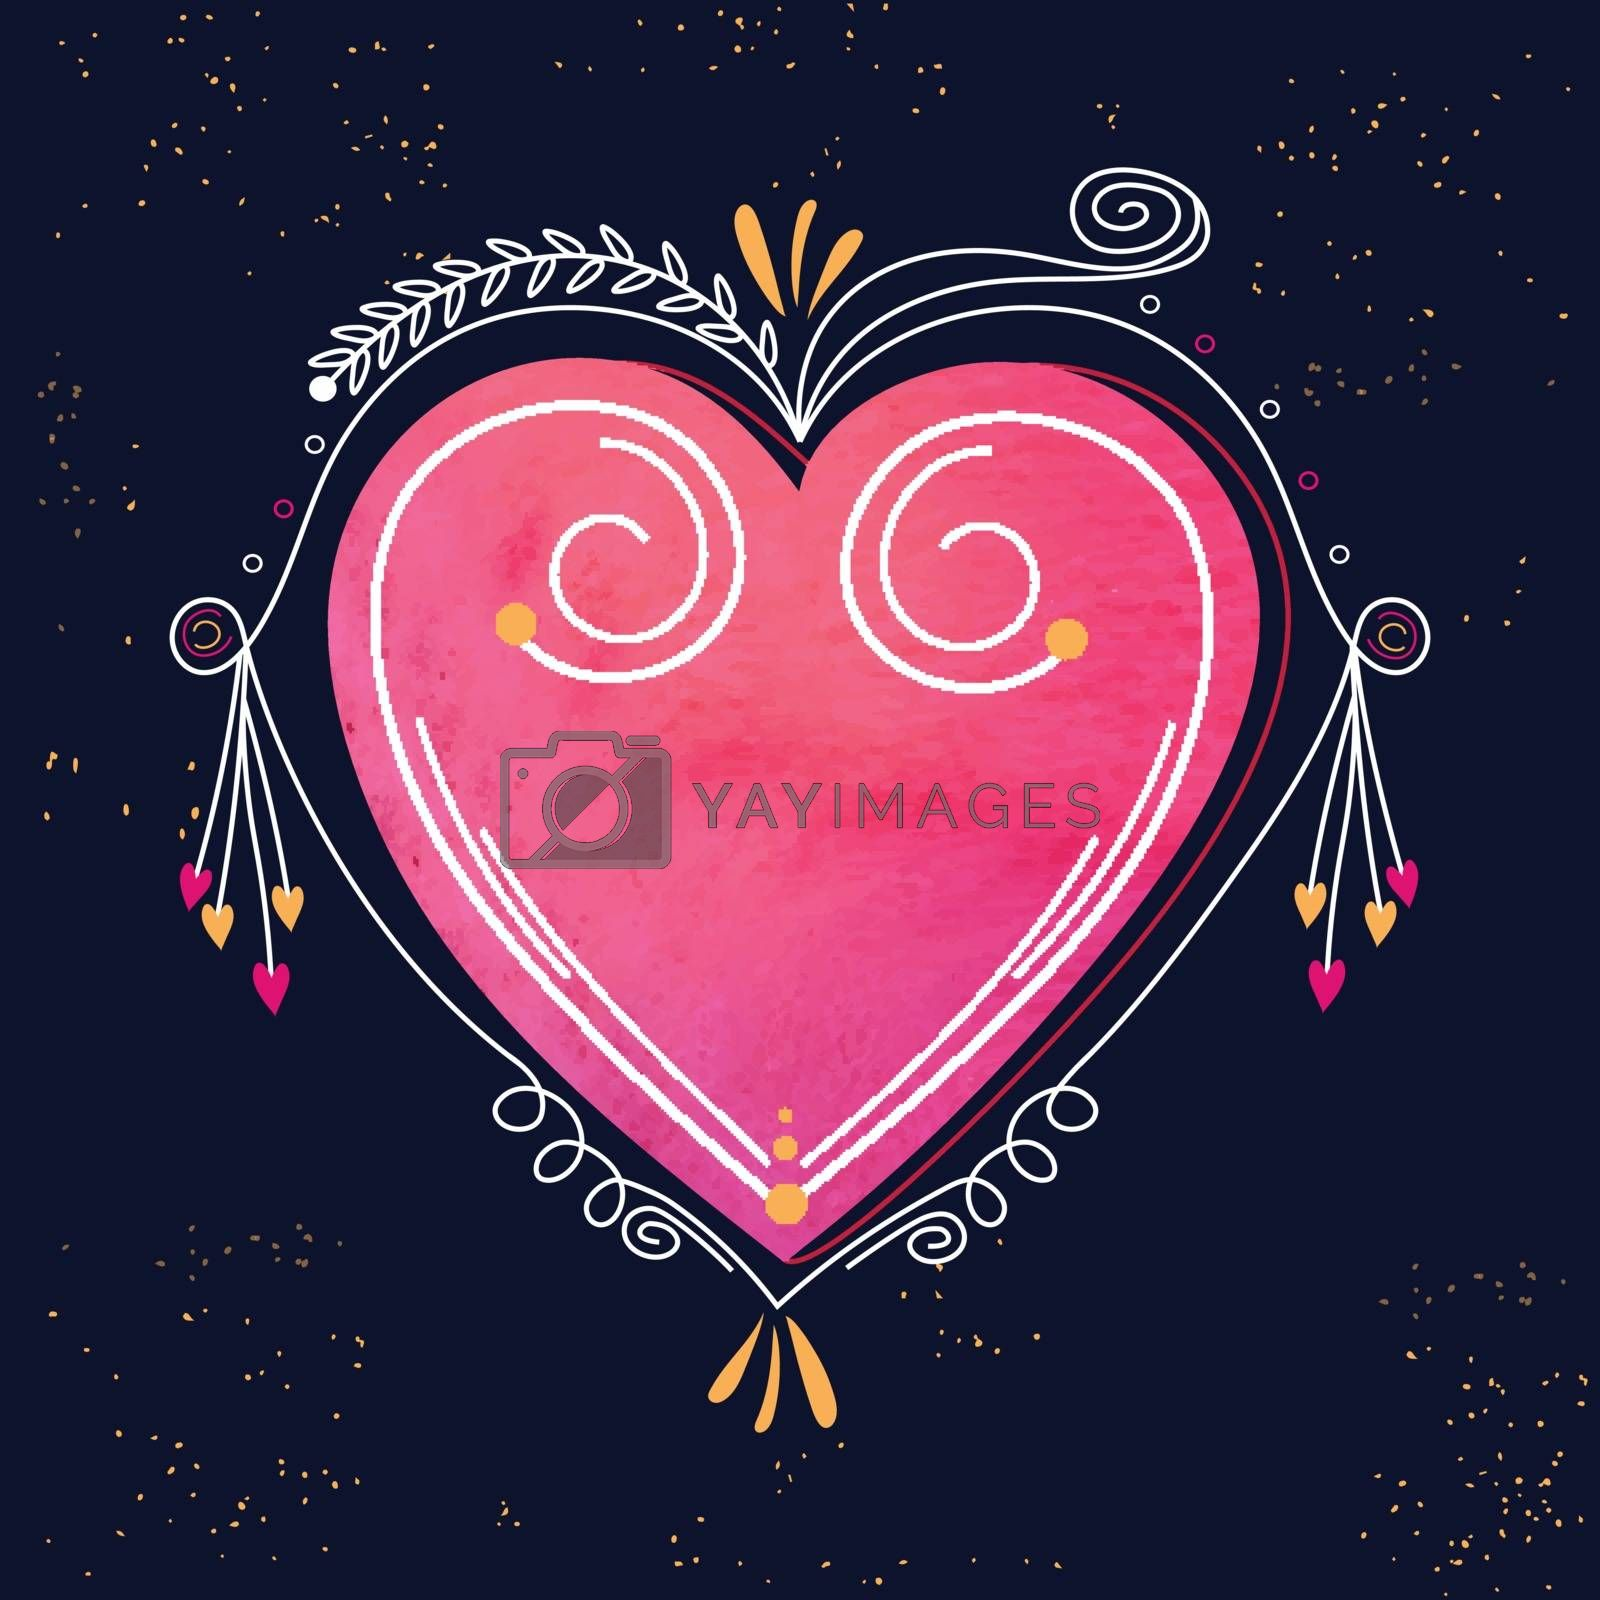 Creative Heart with floral design, Beautiful greeting card for Happy Valentine's Day Celebration.